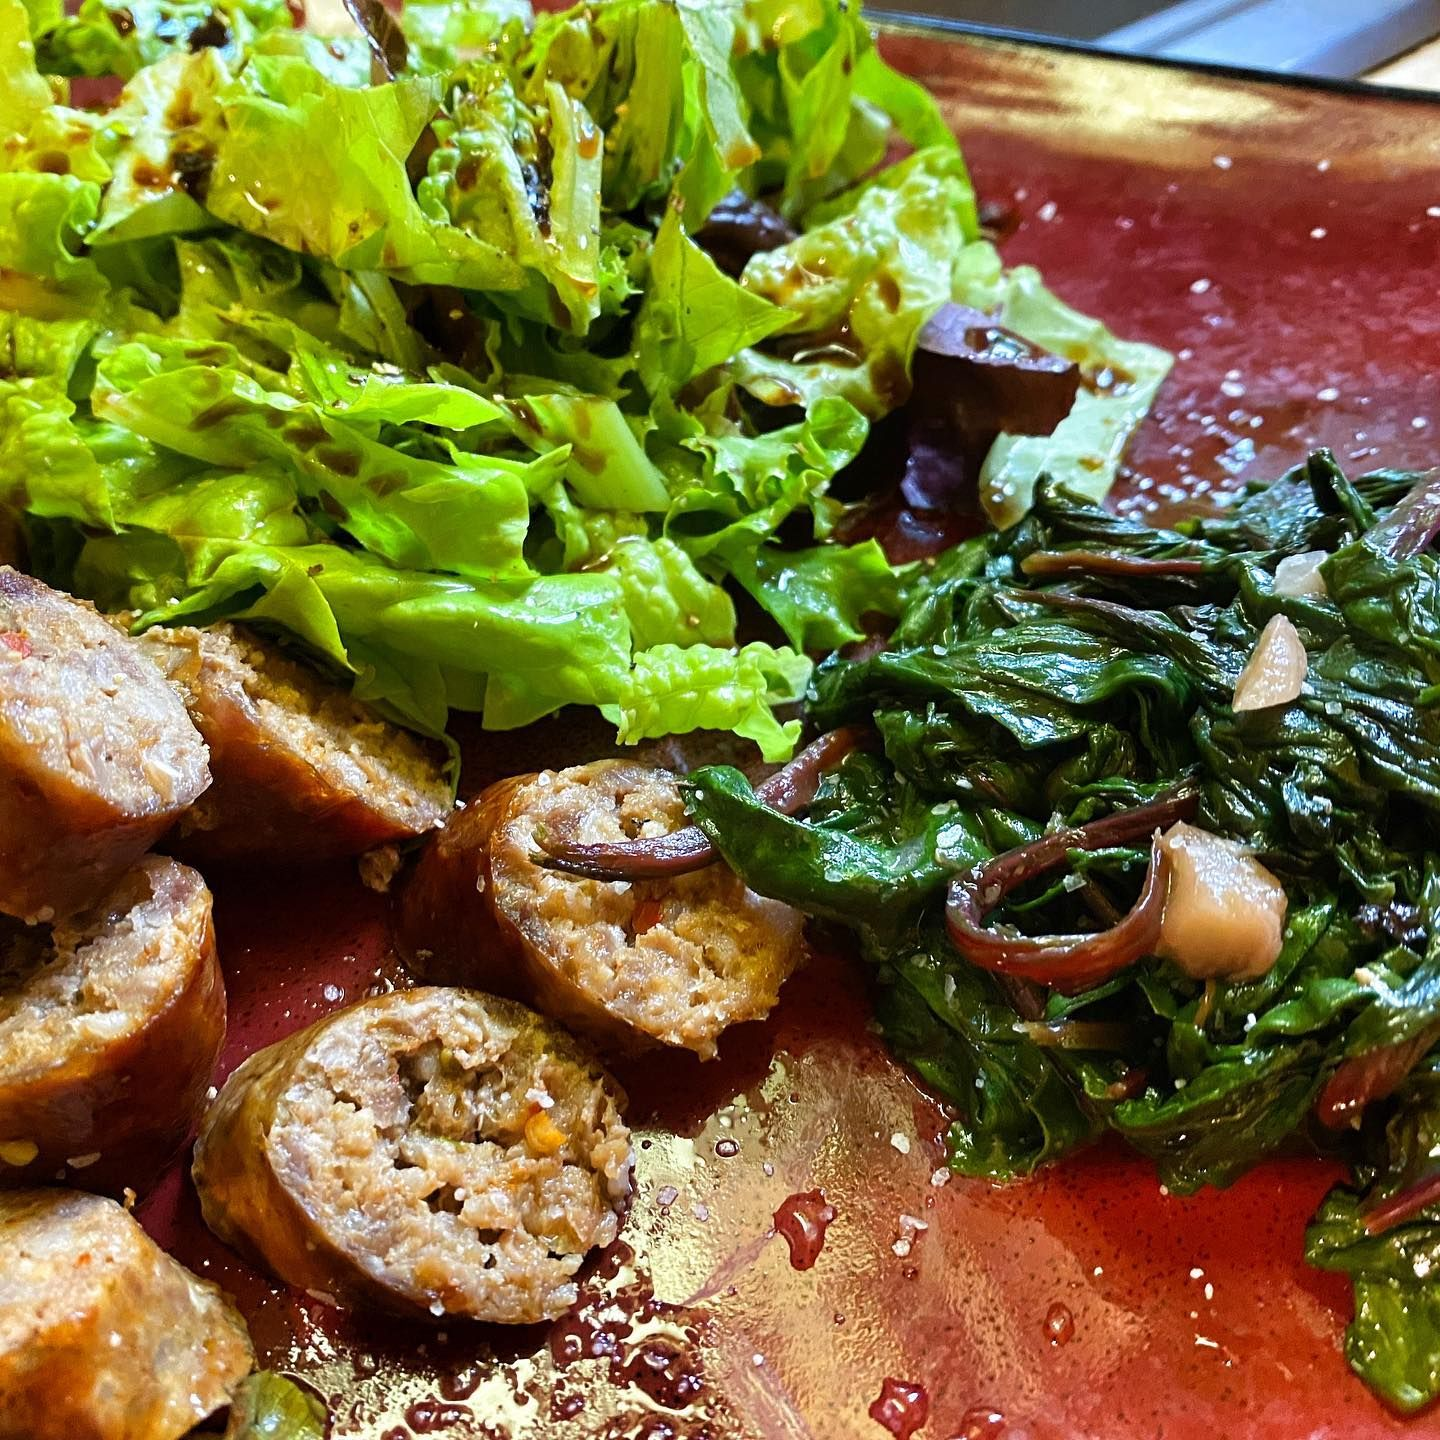 Thats a 100% Lopez Island grown meal. Lettuce. Spinach. Lamb sausage. Done. . . . . . . #skarpari #lopezisland #skarparibladeworks #skarpariknives #pnw #pnwonderland #pacificnorthwest #washington #nature #washingtonstate #upperleftusa #westcoast #food #foodie #delicious #foodlover #healthyfood #dinner #islandgrown #cheflife #healthyingredients